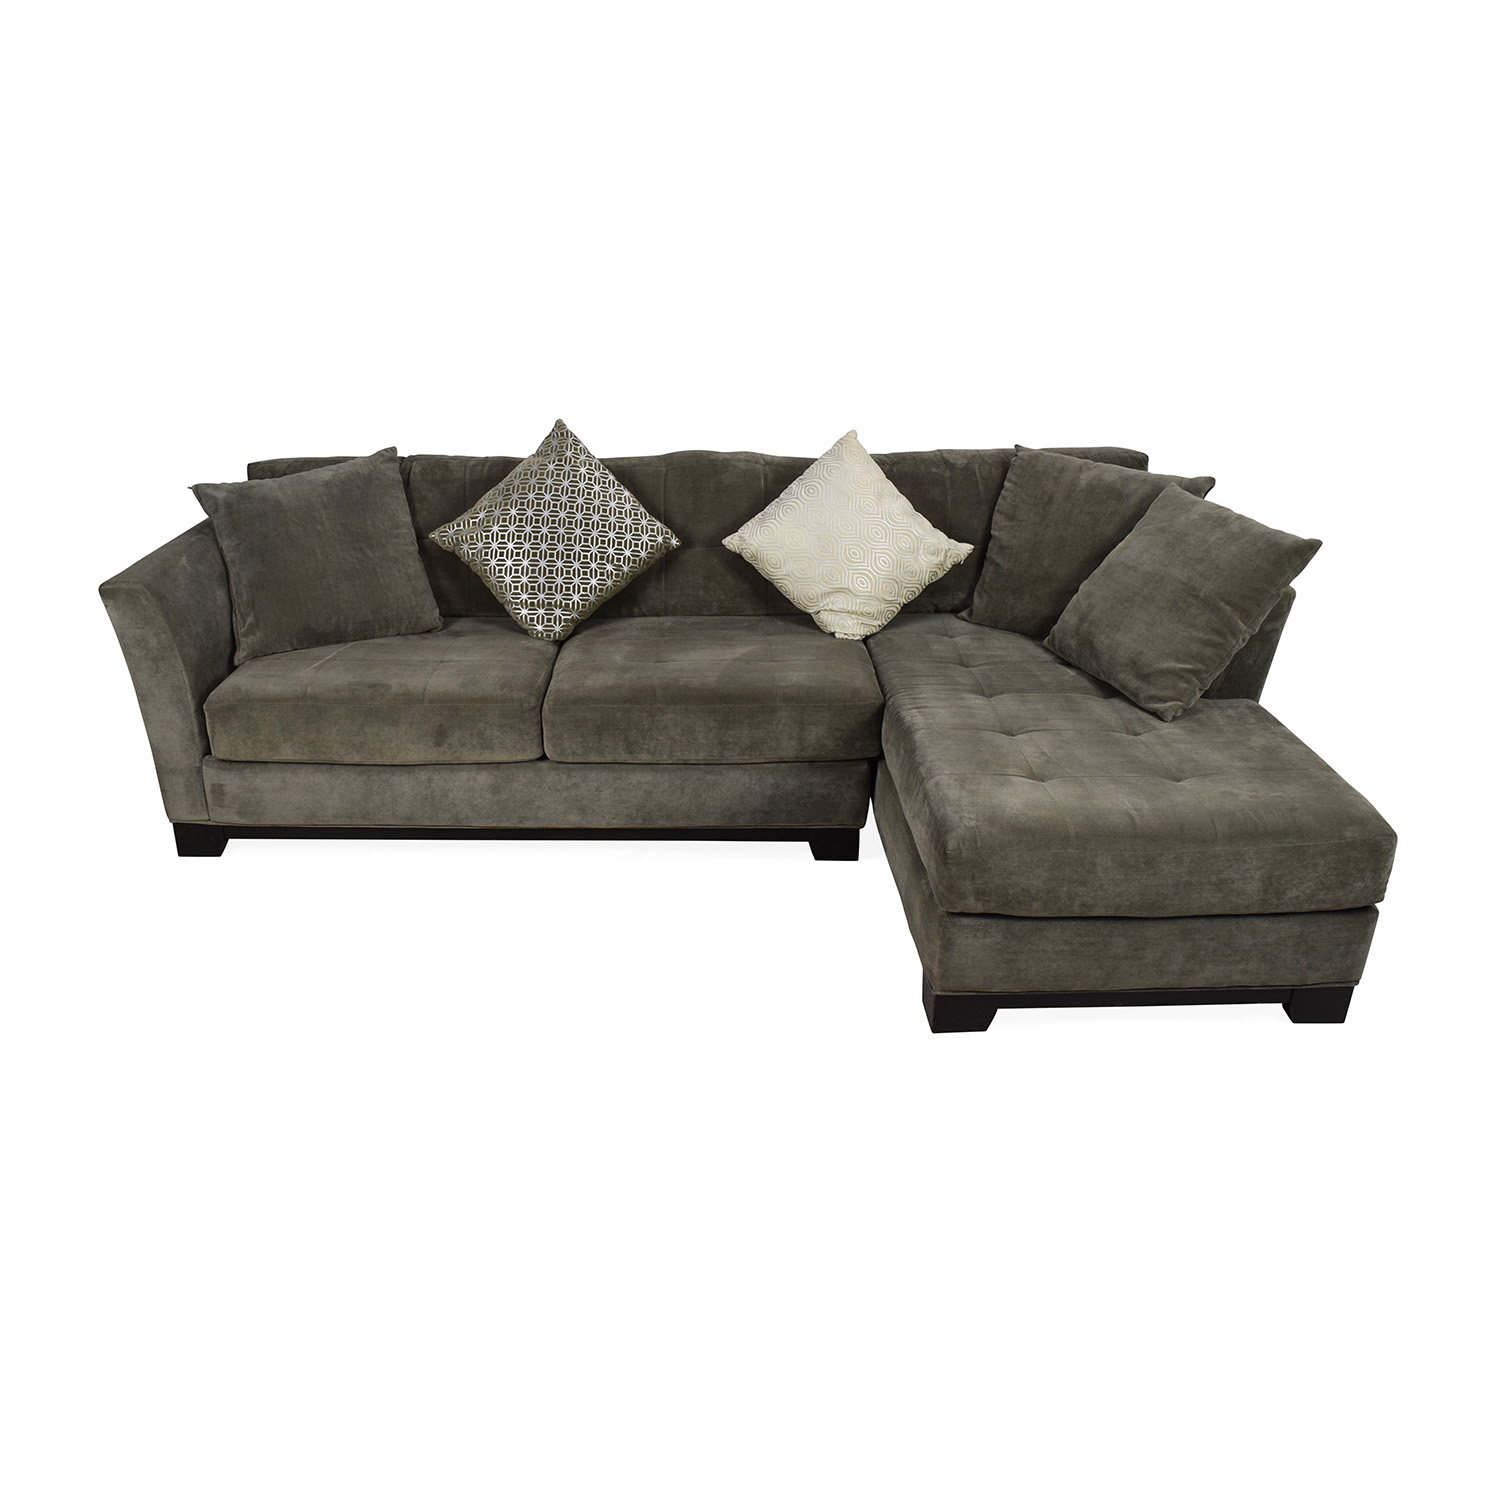 beautiful ideas interesting for of sofa furniture grey sectional living couch room creative